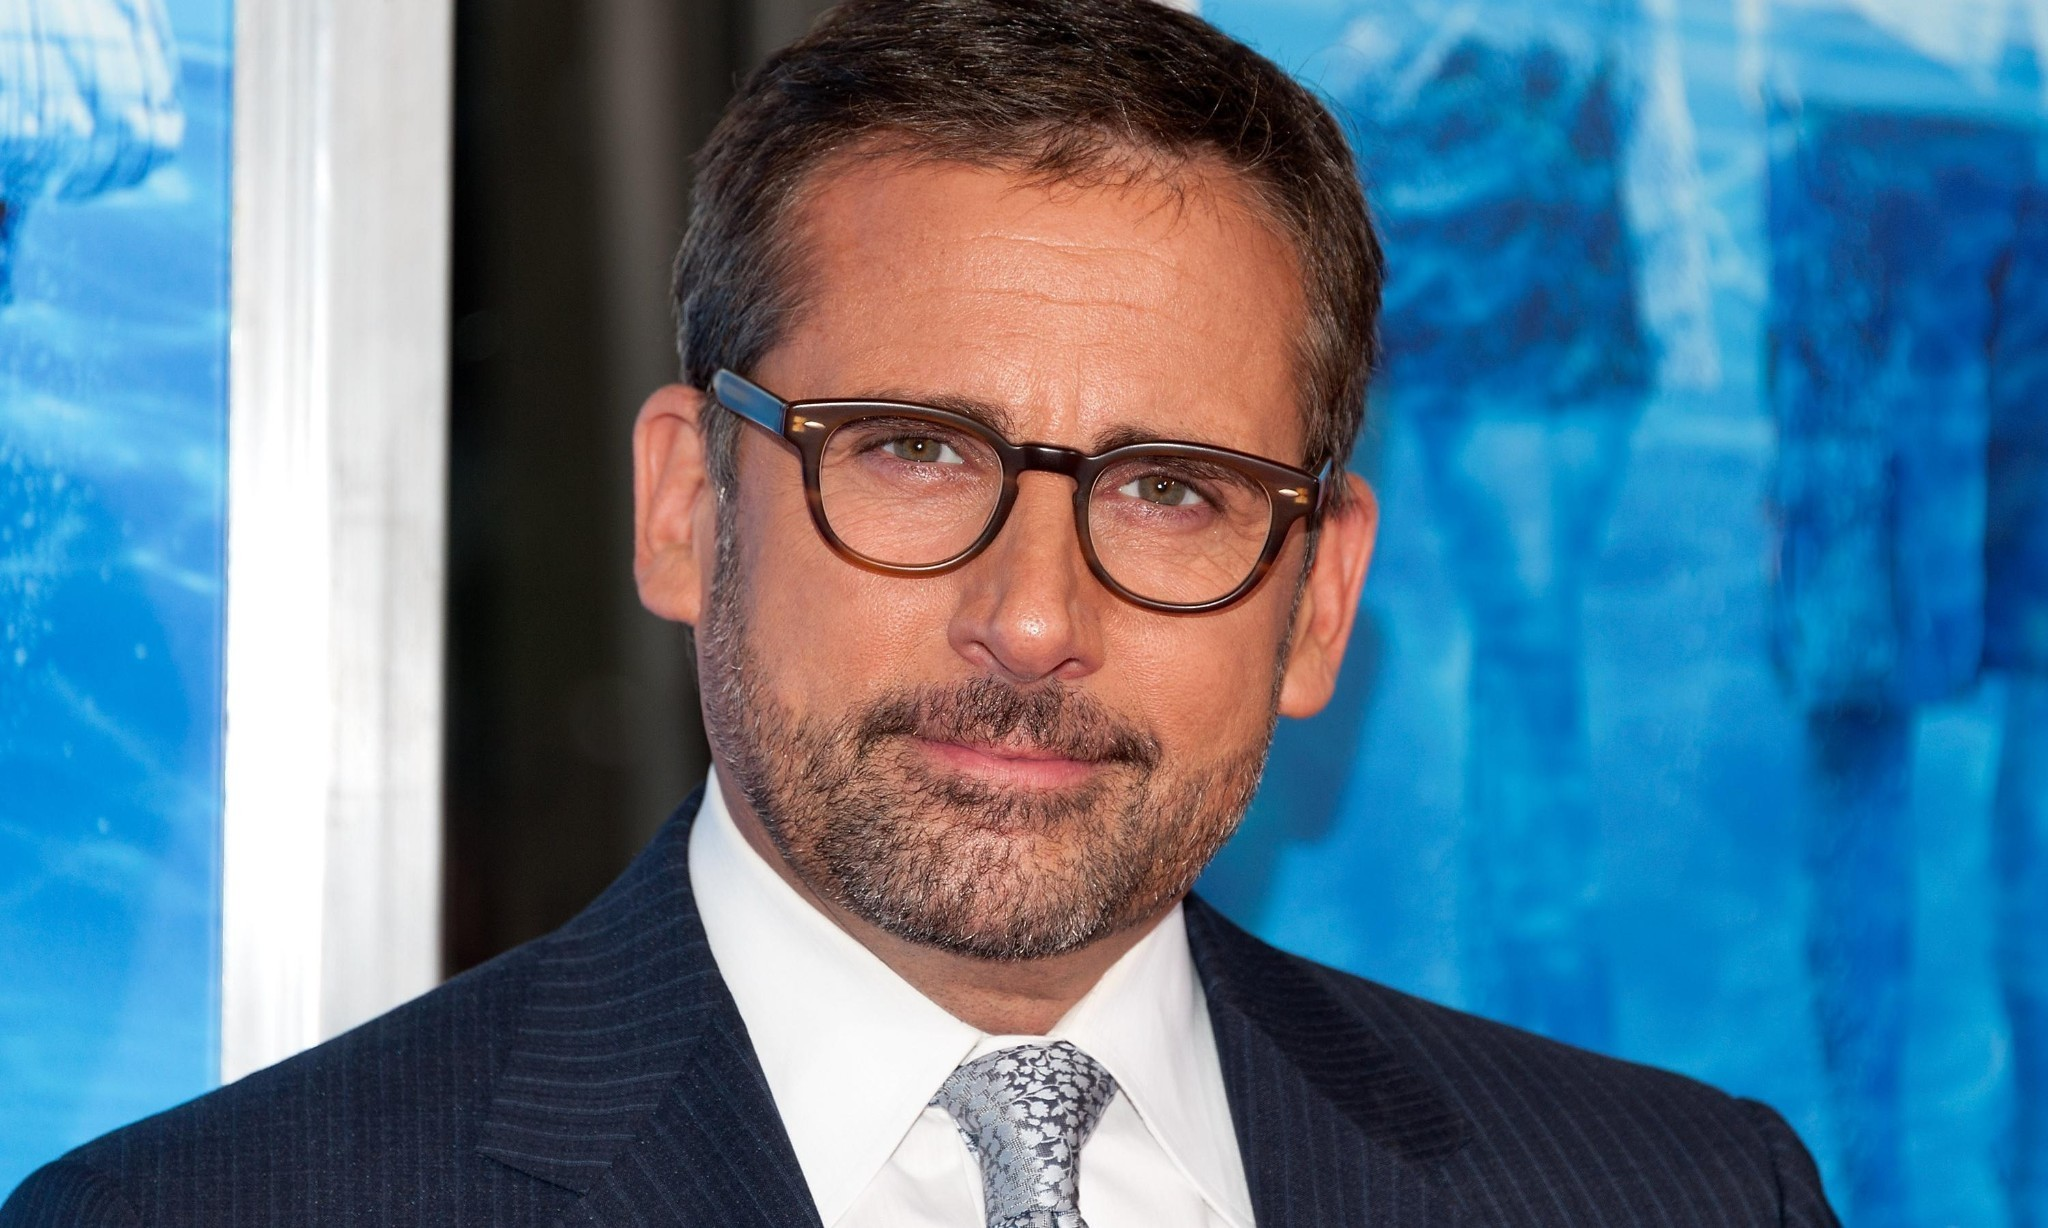 Steve Carell set to star in Minecraft film